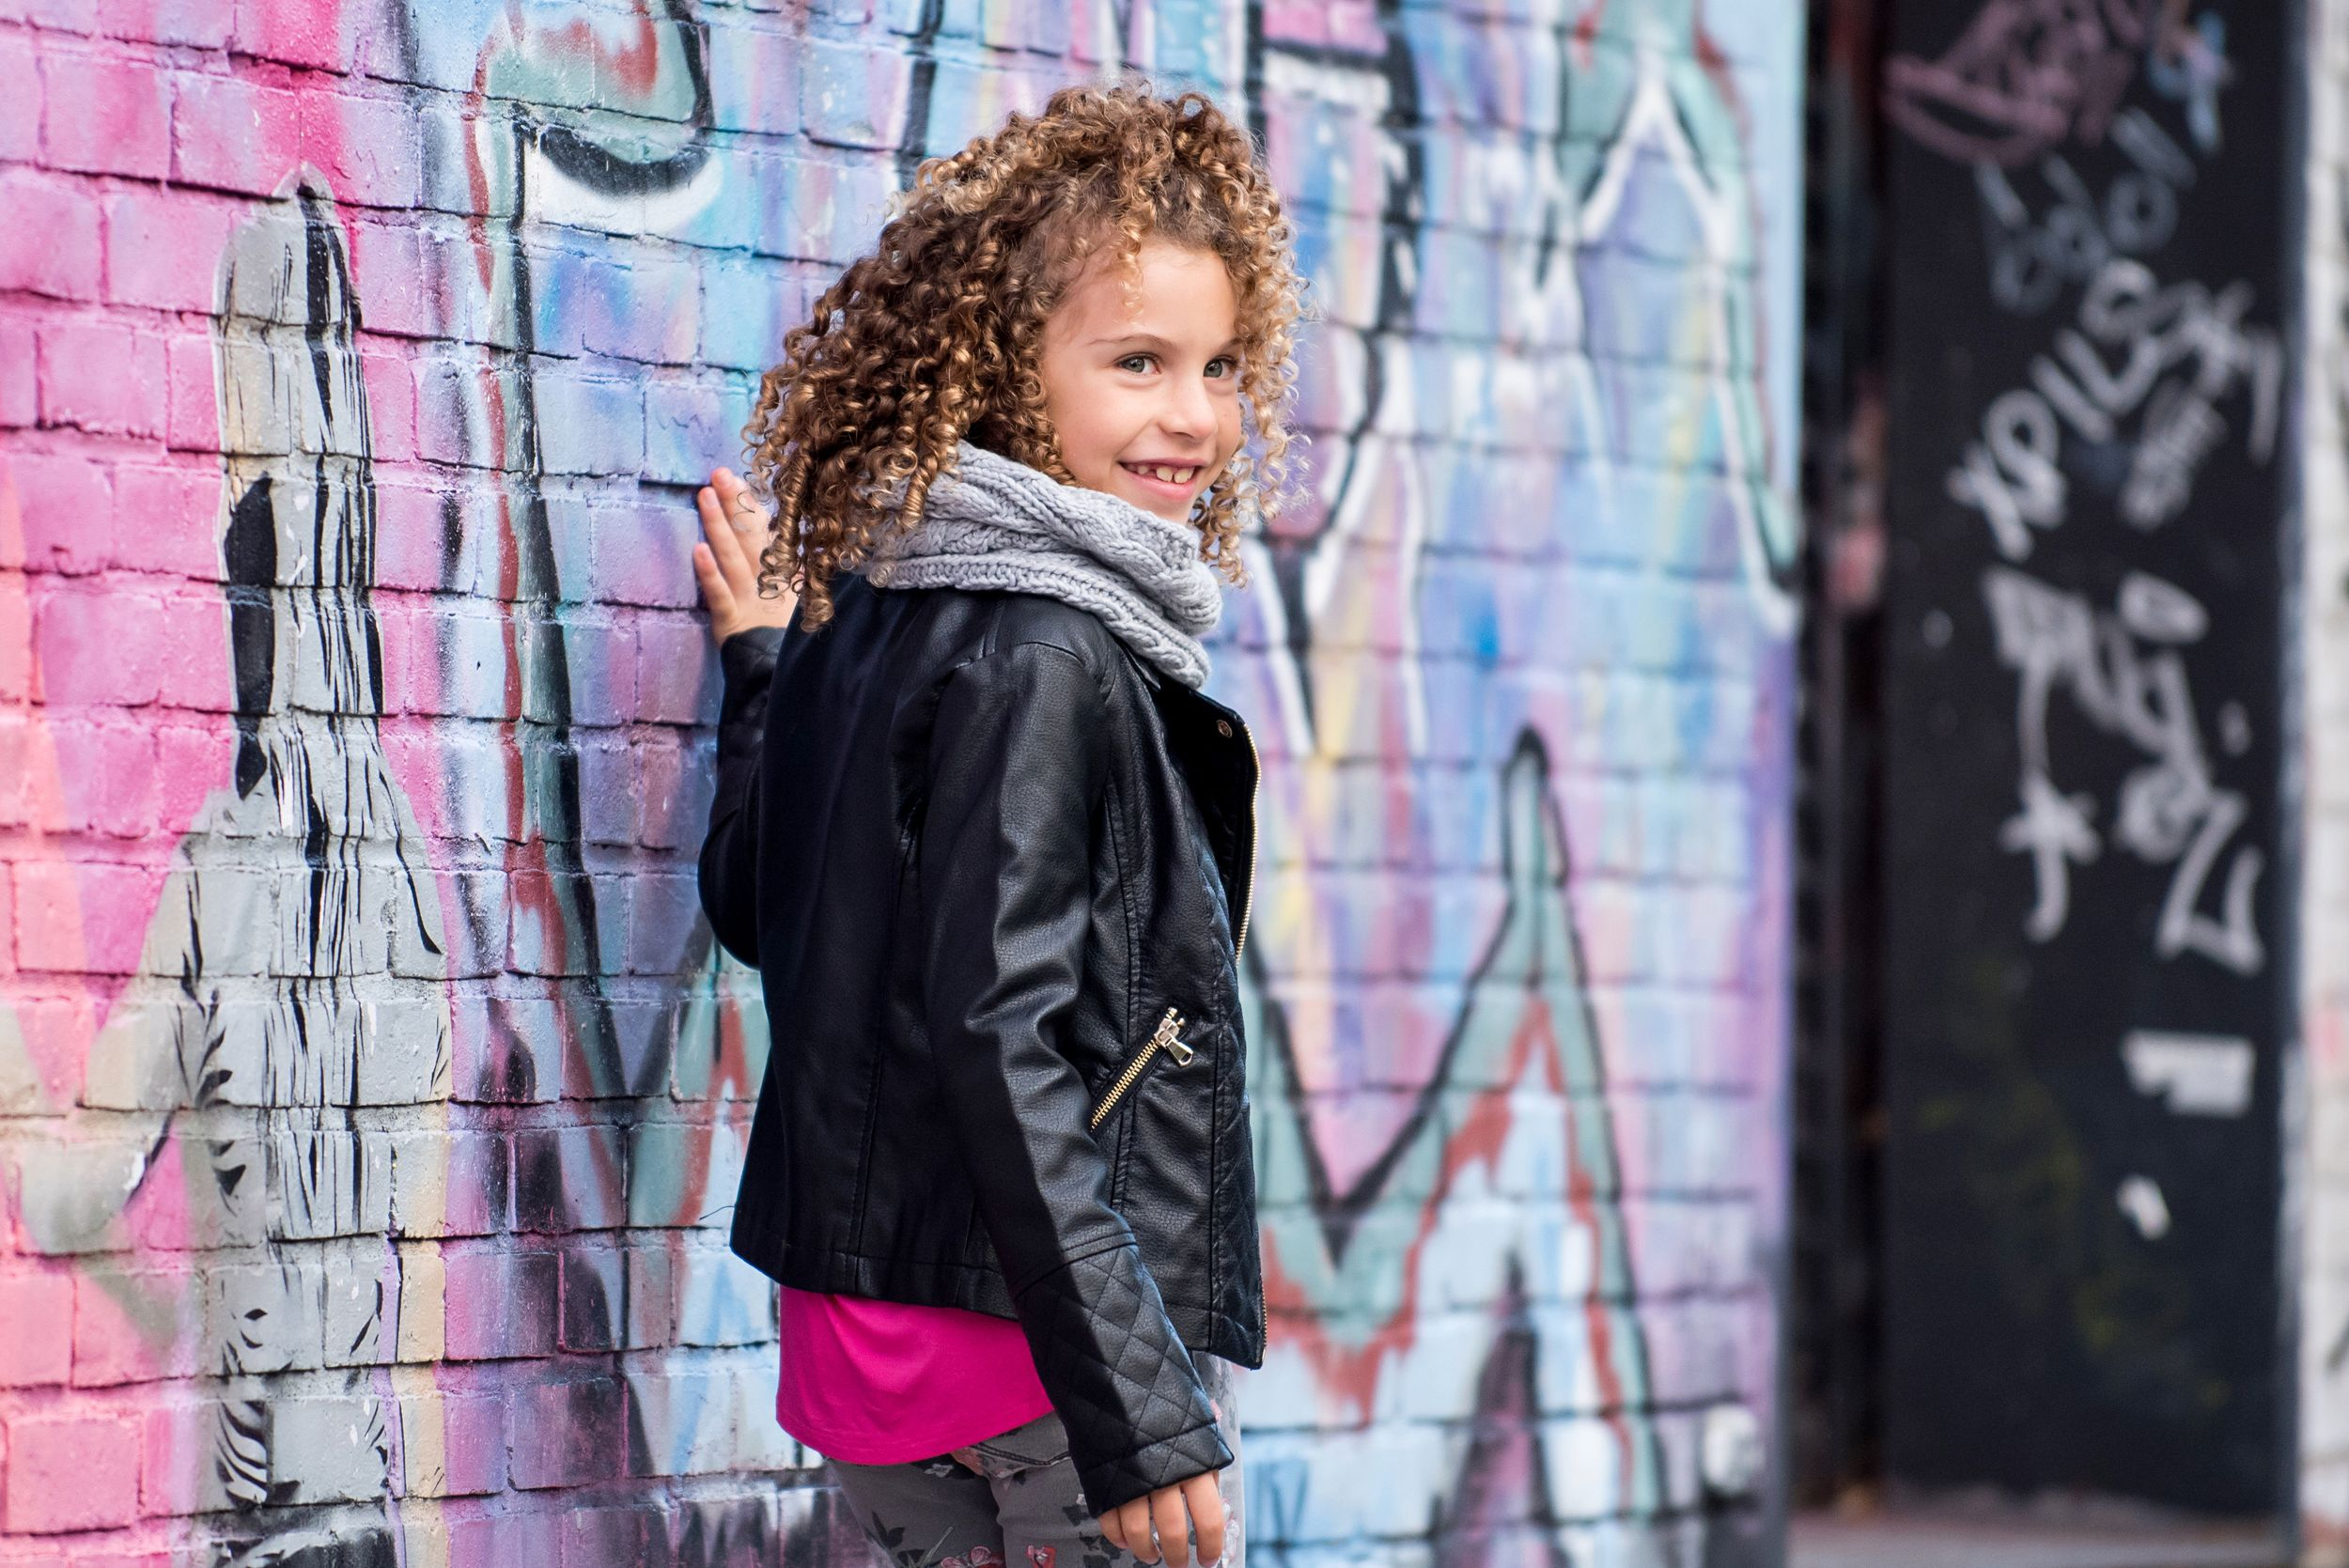 female child model wearing stylish clothes with graffiti background